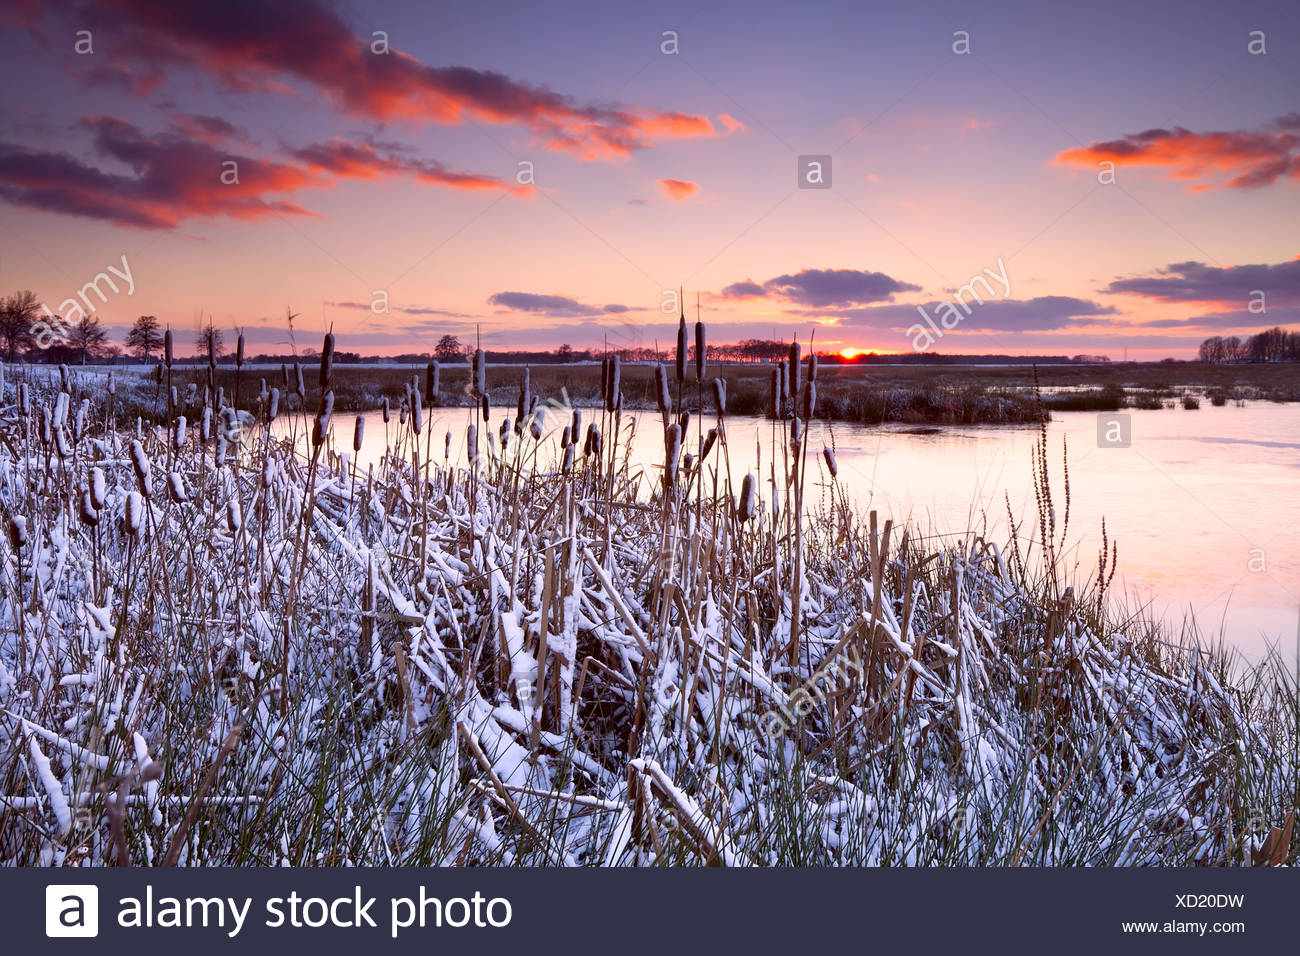 dramatic sunrise over frozen lake - Stock Image